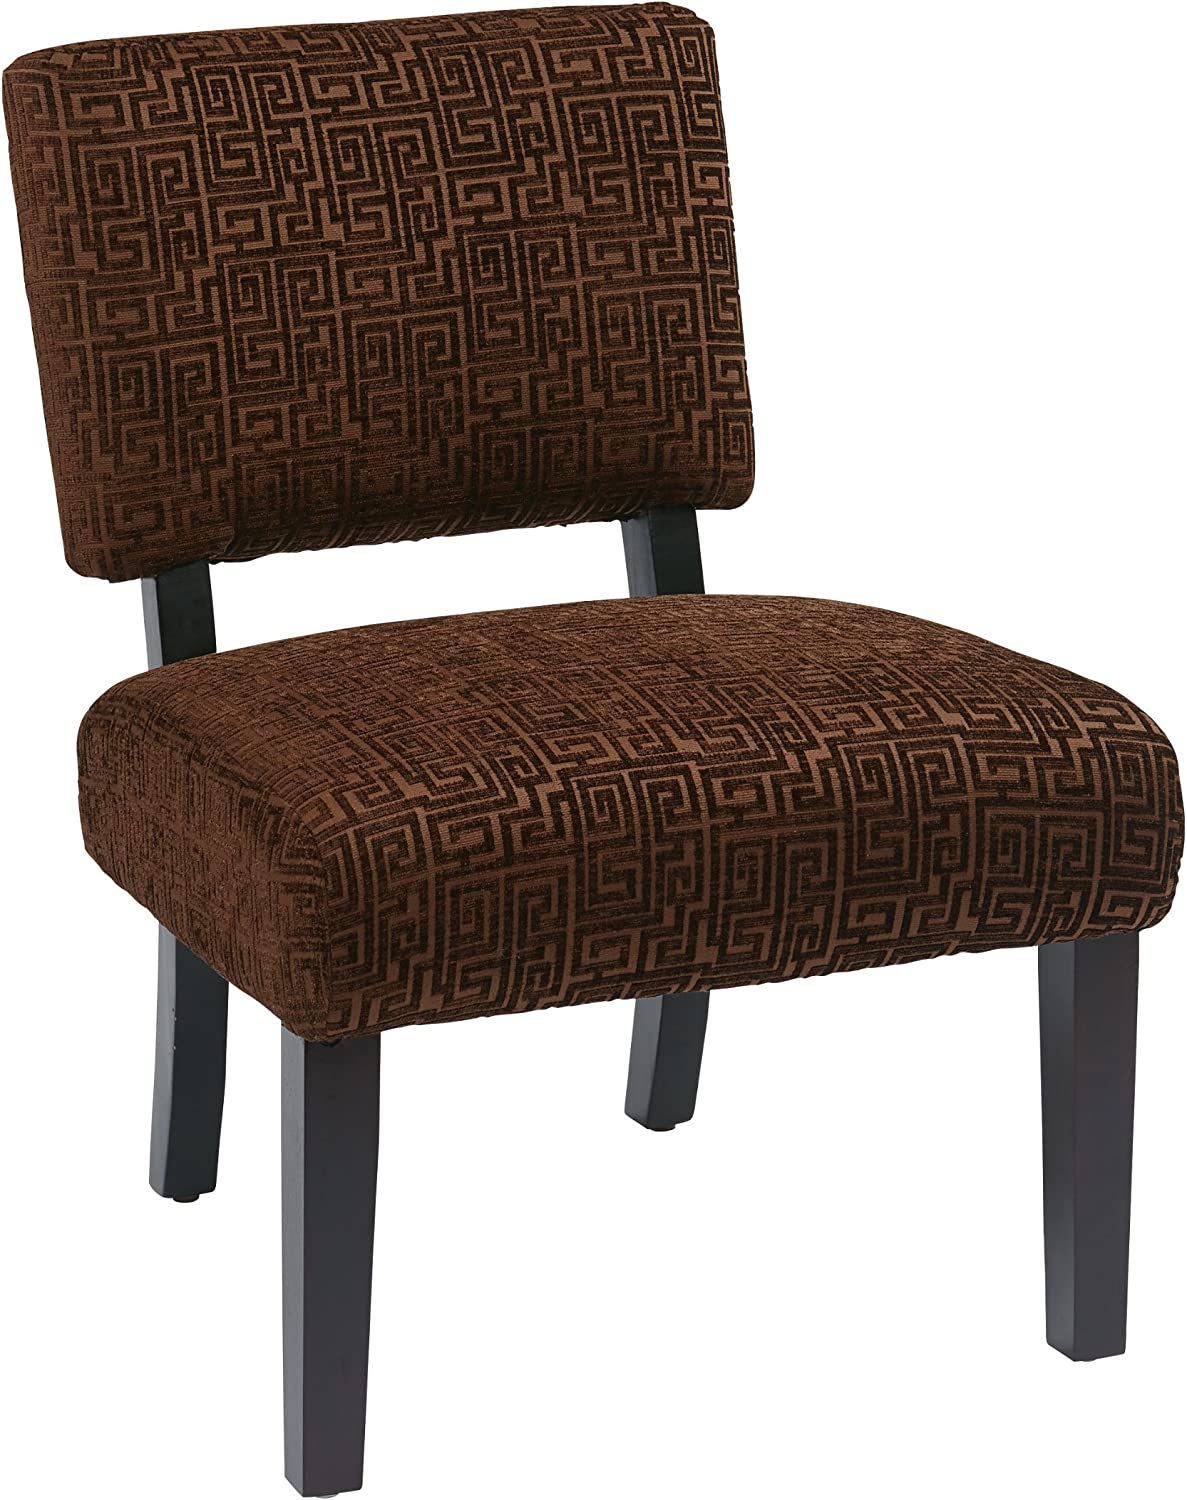 AVE SIX Jasmine Accent Chair with Espresso Finish Solid Wood Legs, Maze Chocolate